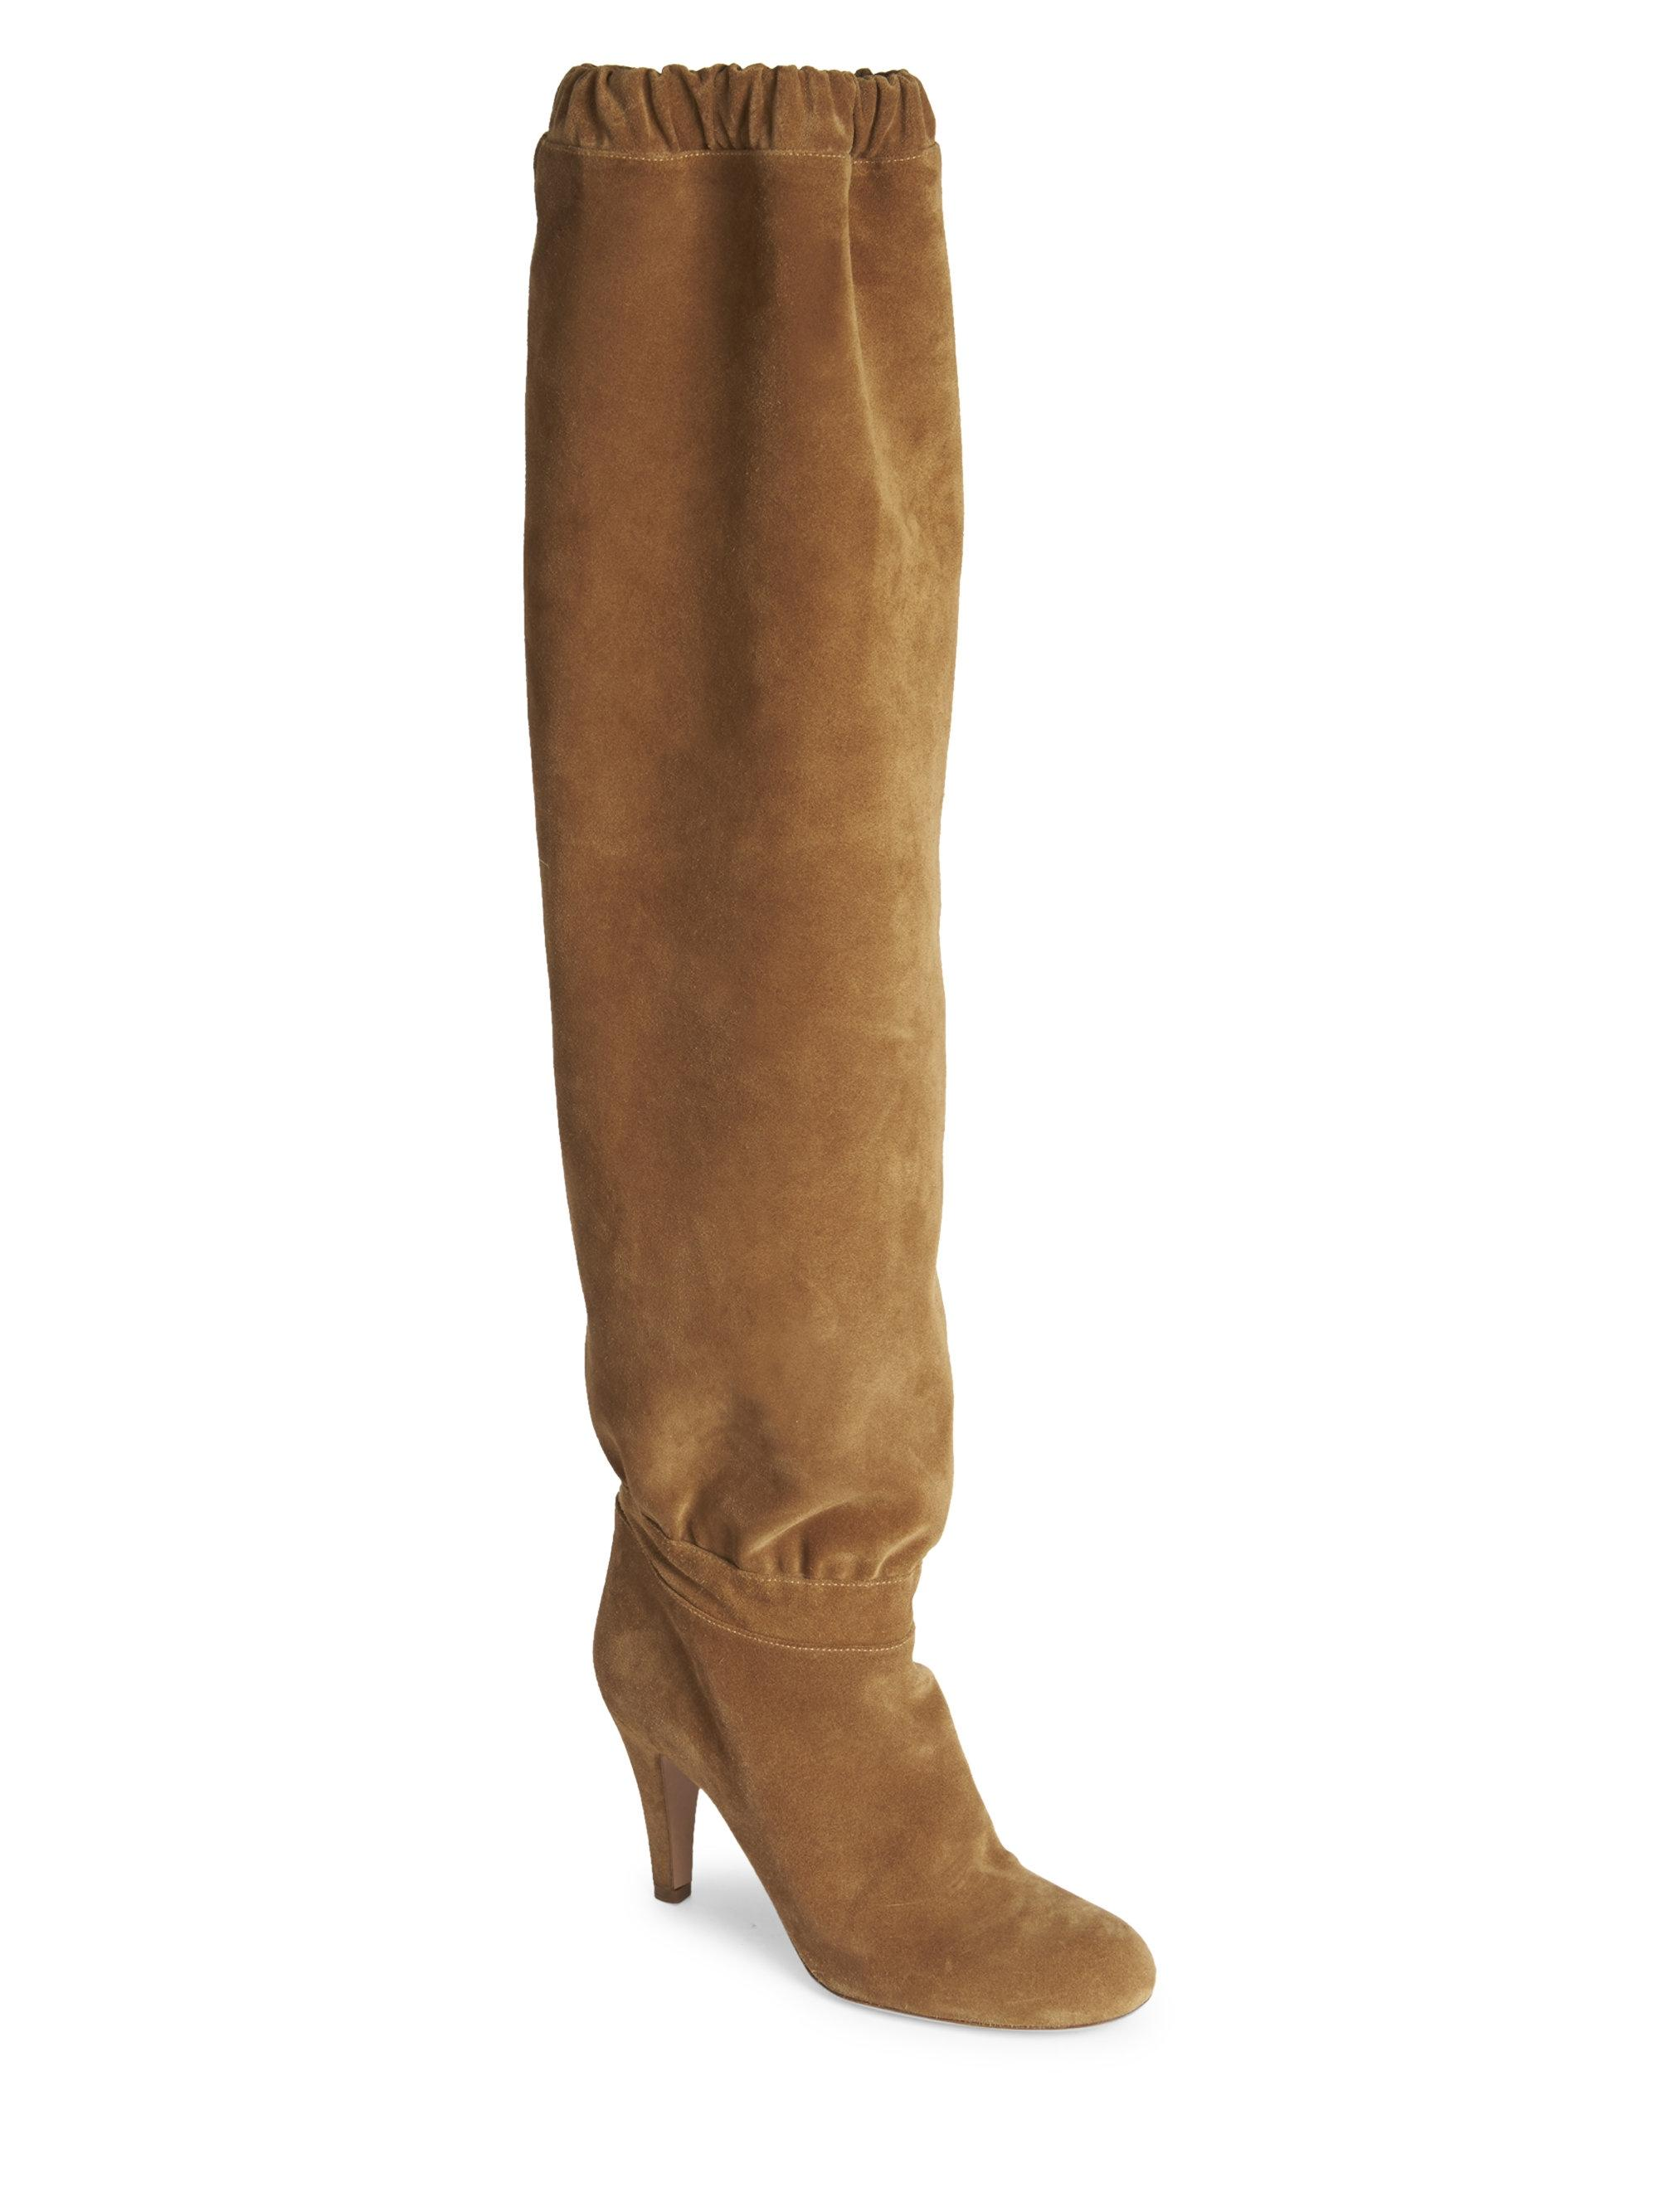 Chloé New Lena Slouchy Suede Over The Knee Boots/Booties Size EU 36 (Approx. US 6) Regular (M, B)